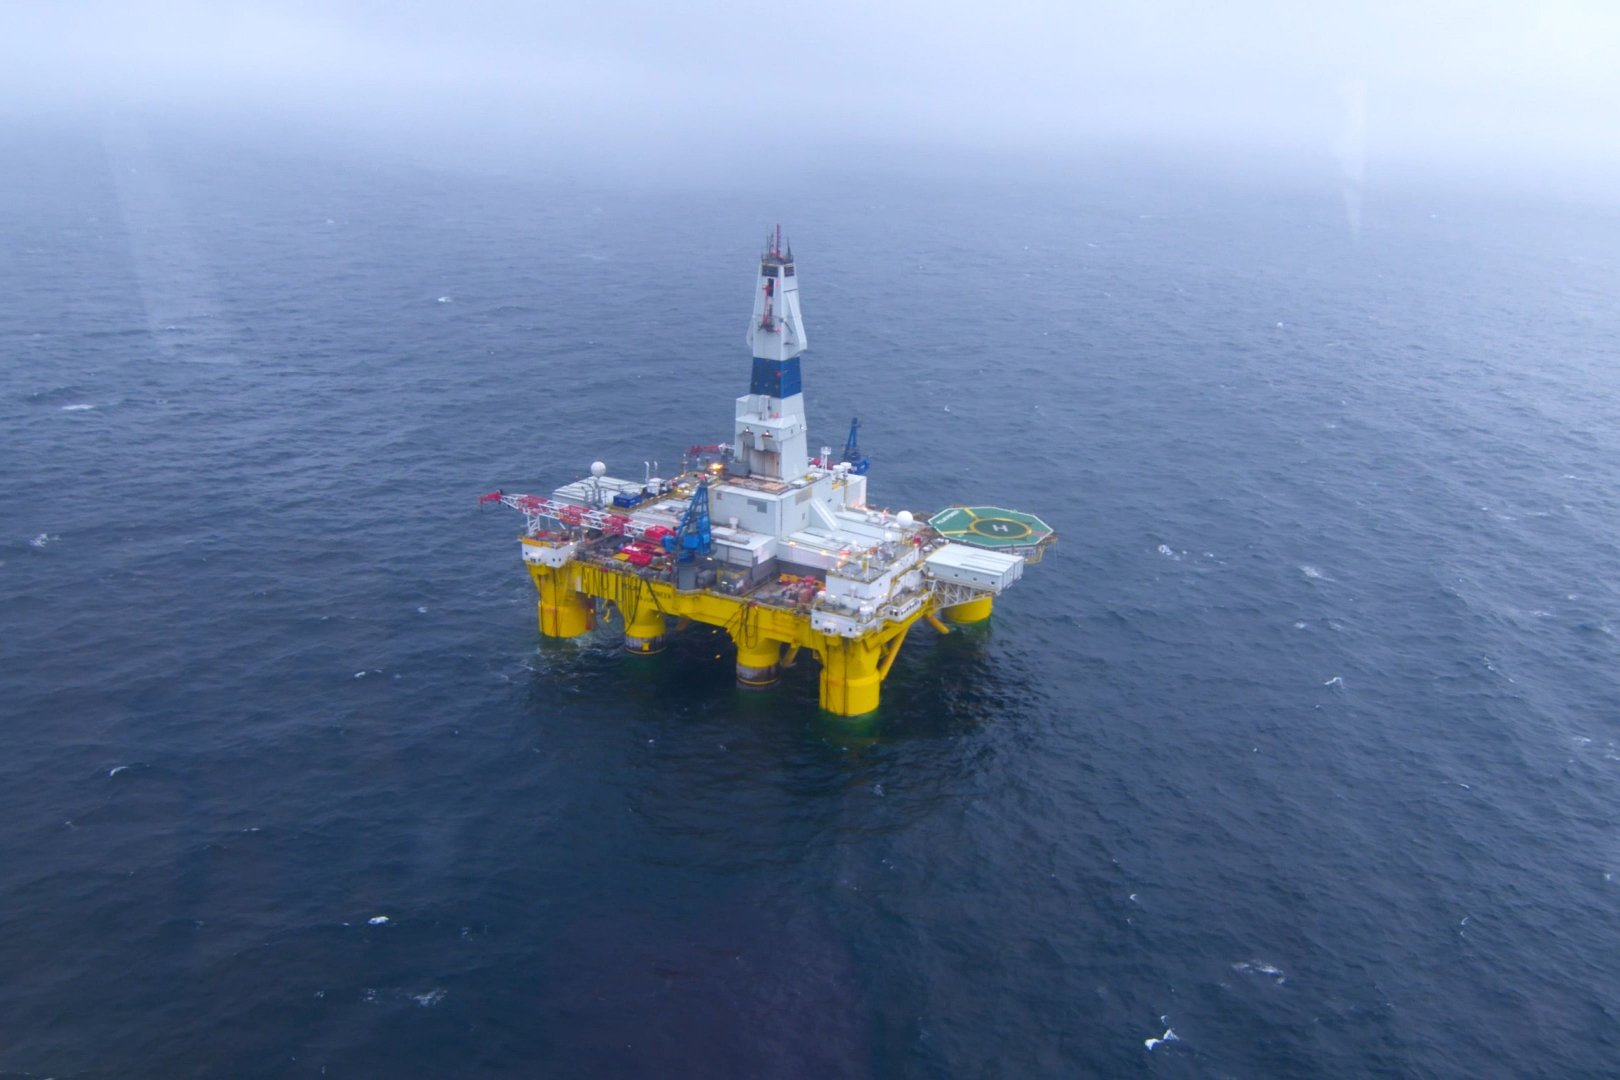 Investors call for moratorium on Arctic high seas oil and gas activity